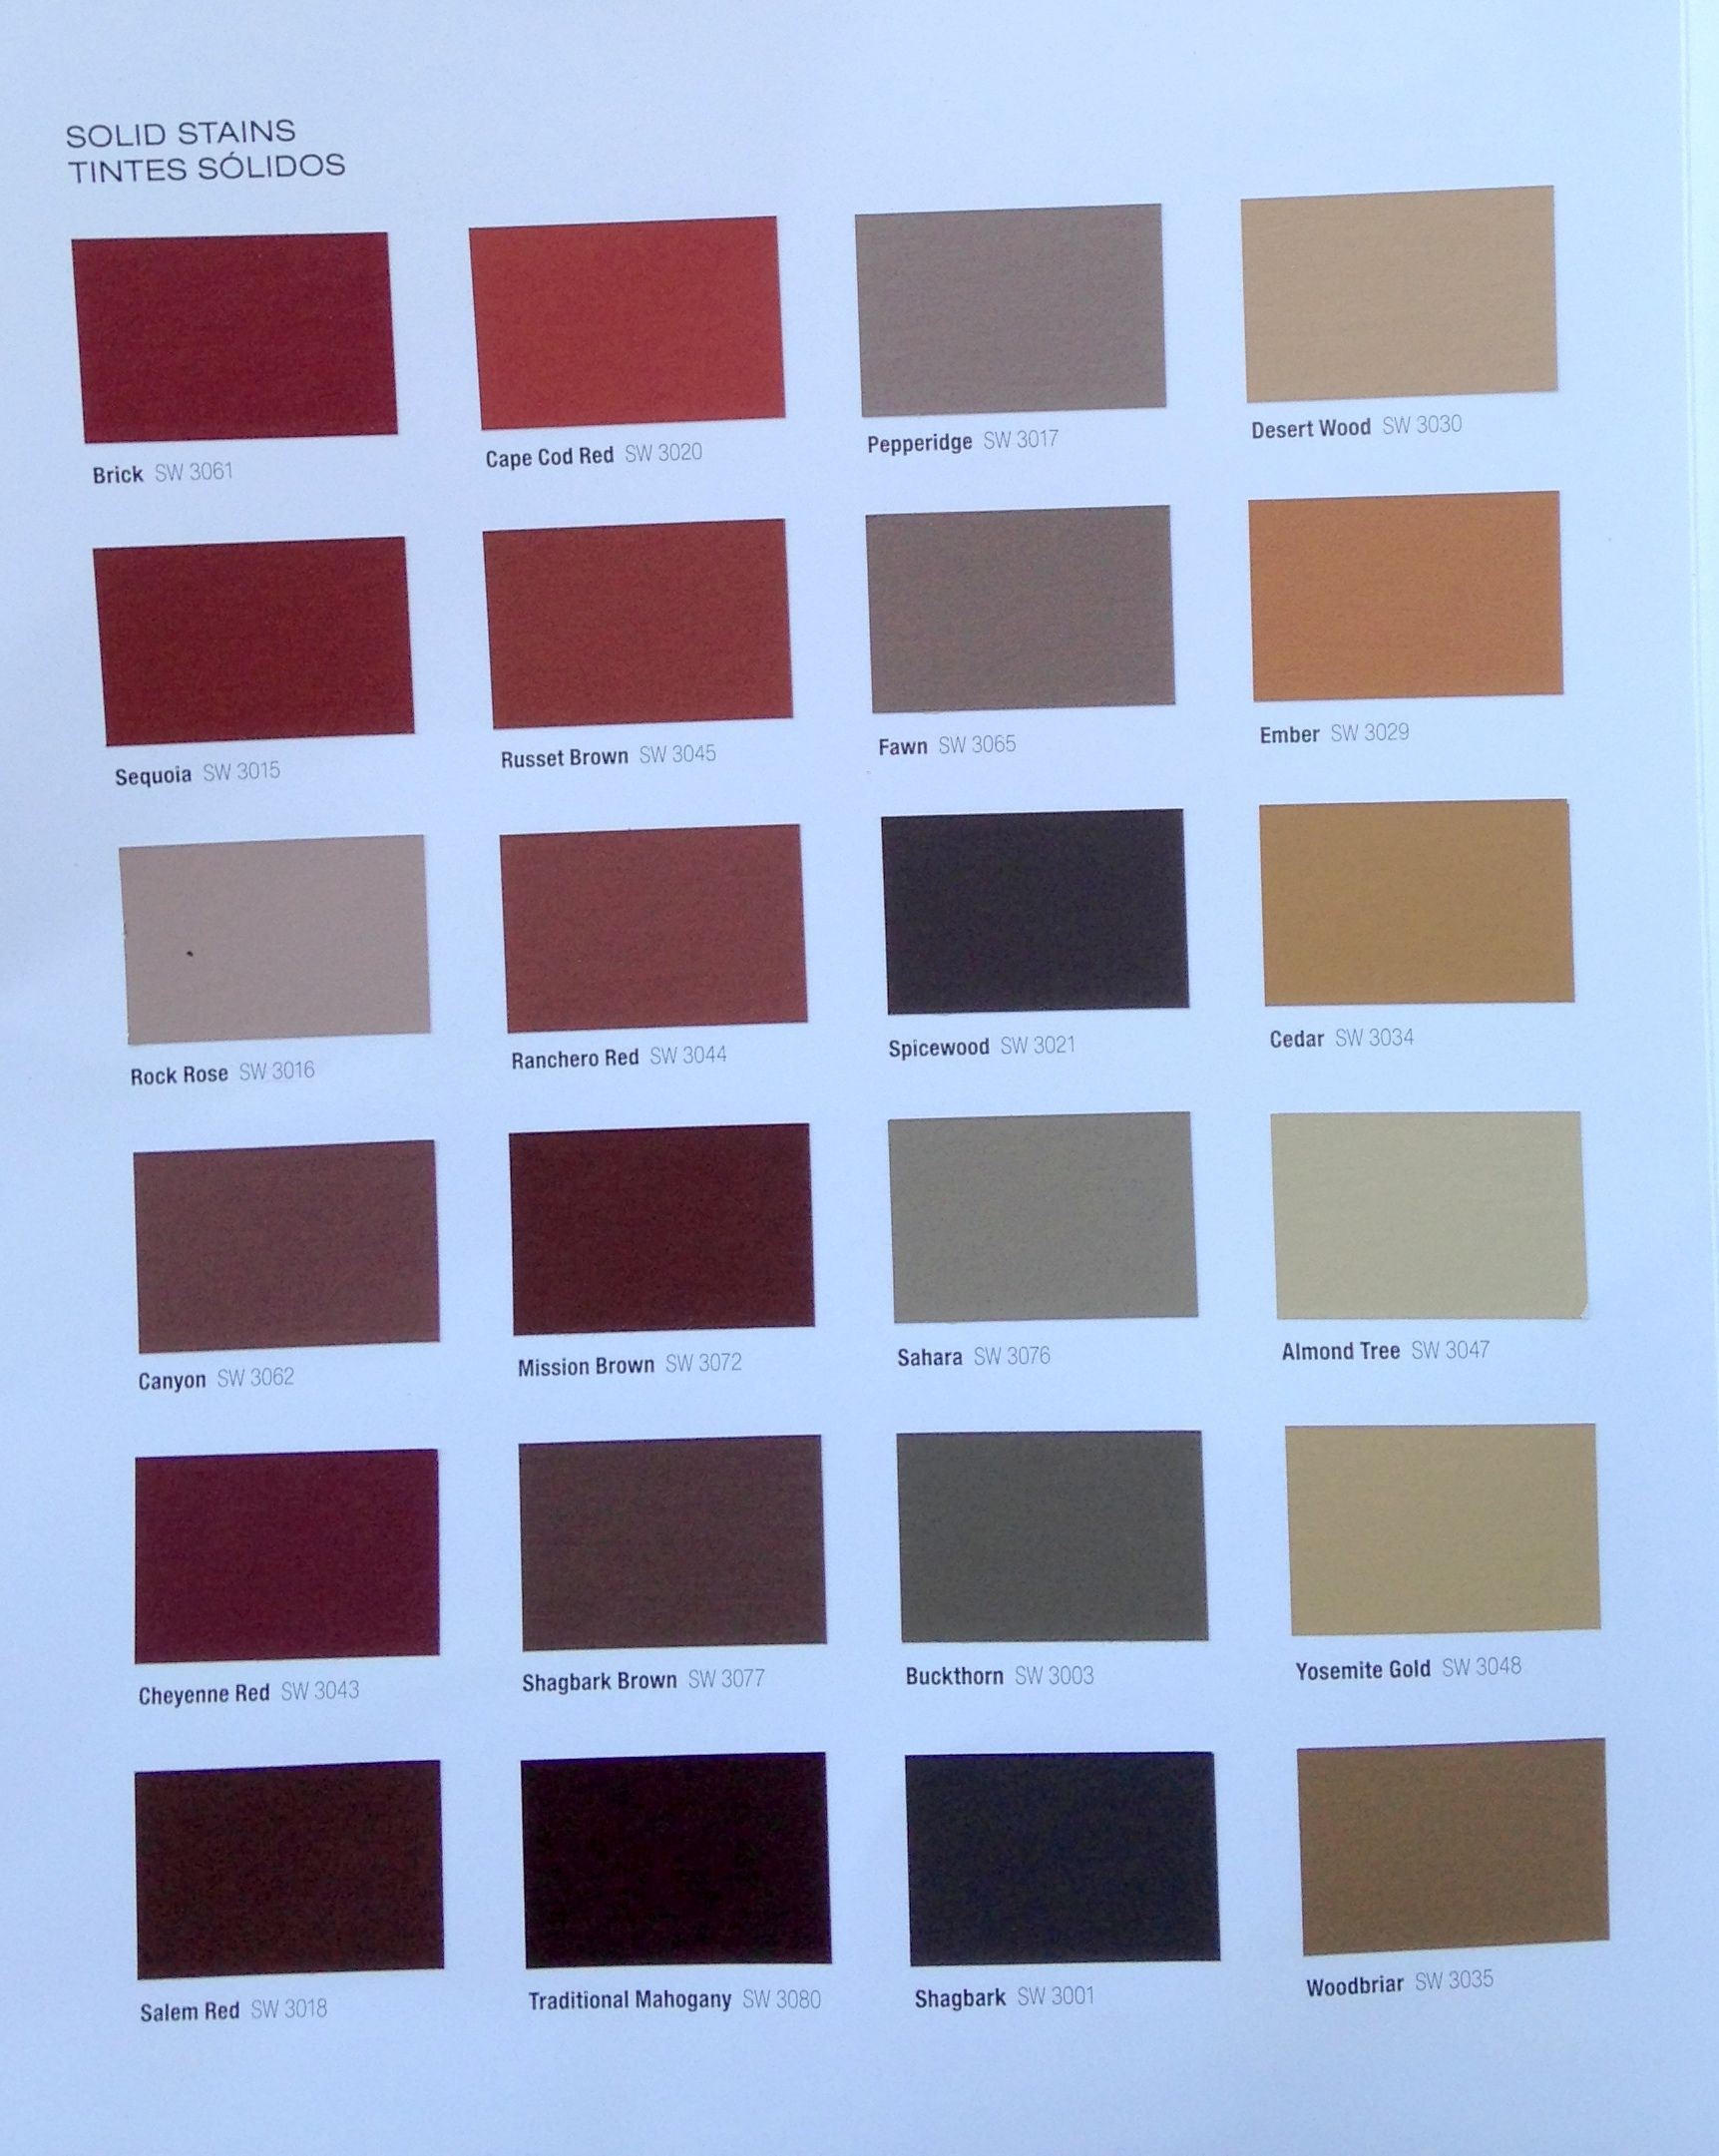 Sherwin Williams Solid Stains For Deck Fence Sherwin Williams Deck Paint Deck Paint Deck Paint Colors